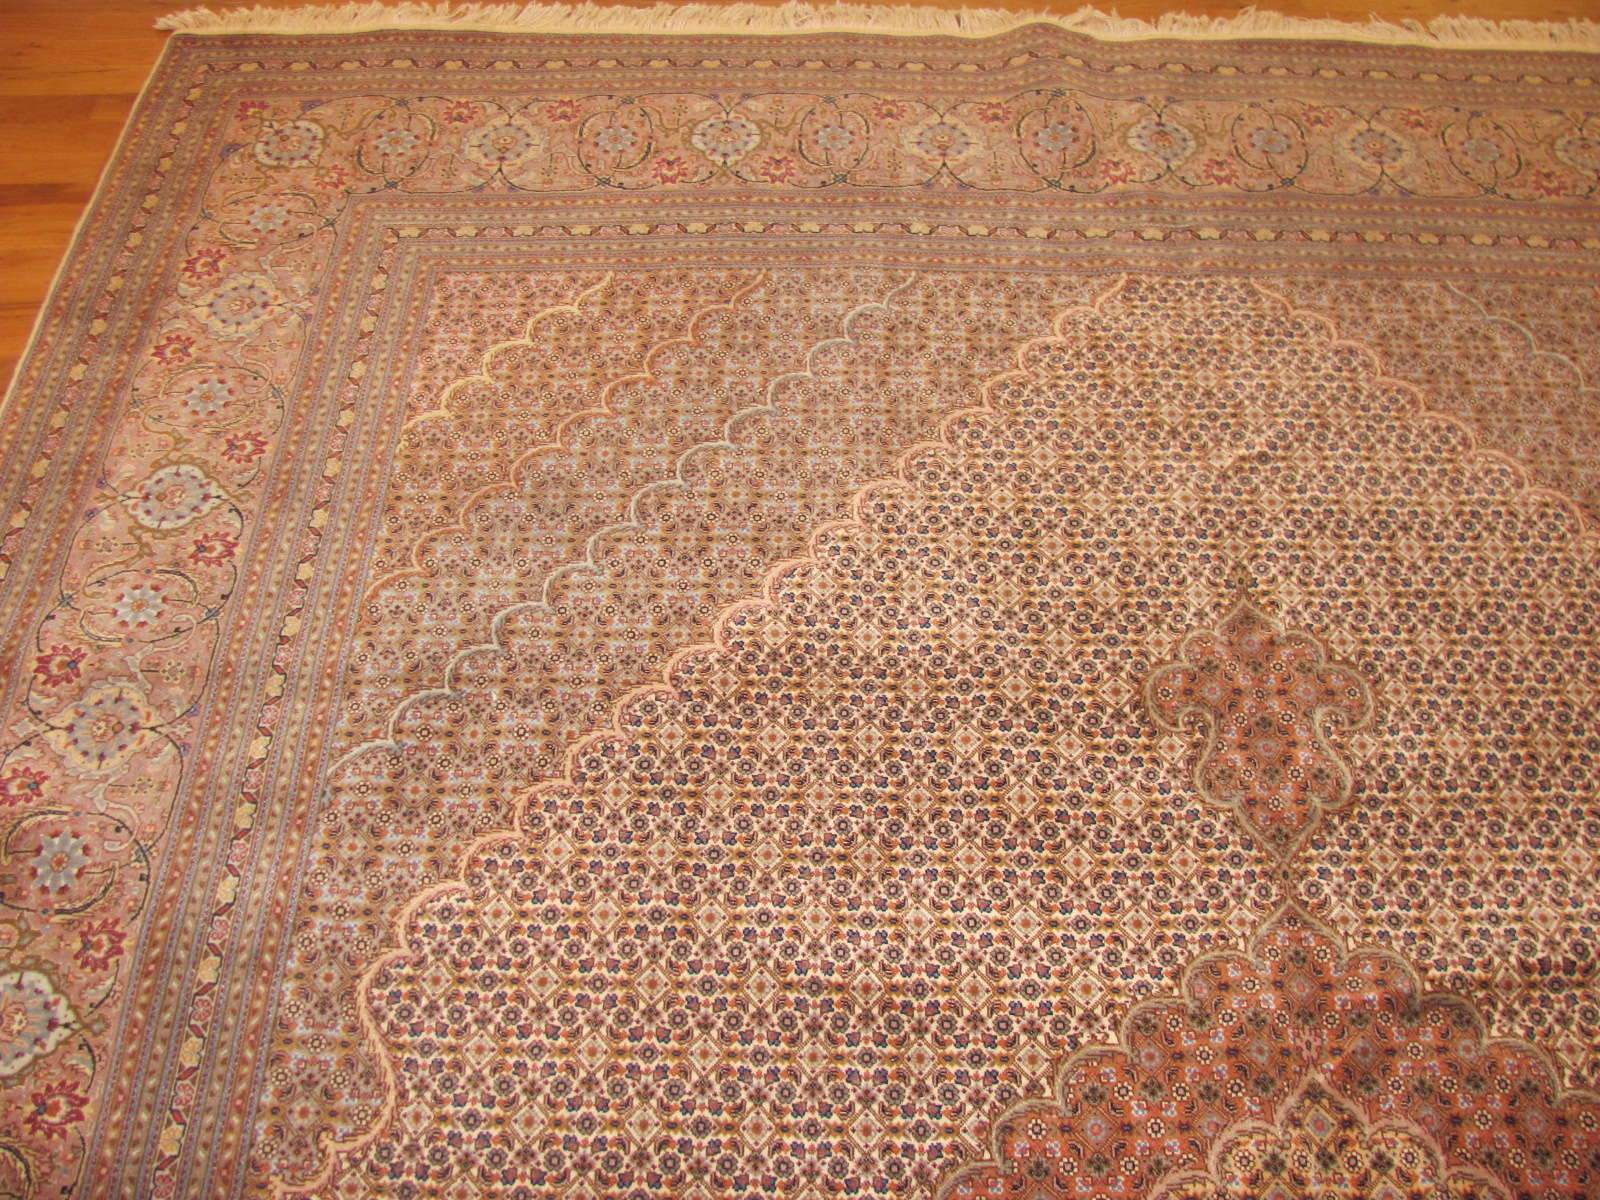 24712 Persian Tabriz carpet 8,3x11,3 -2